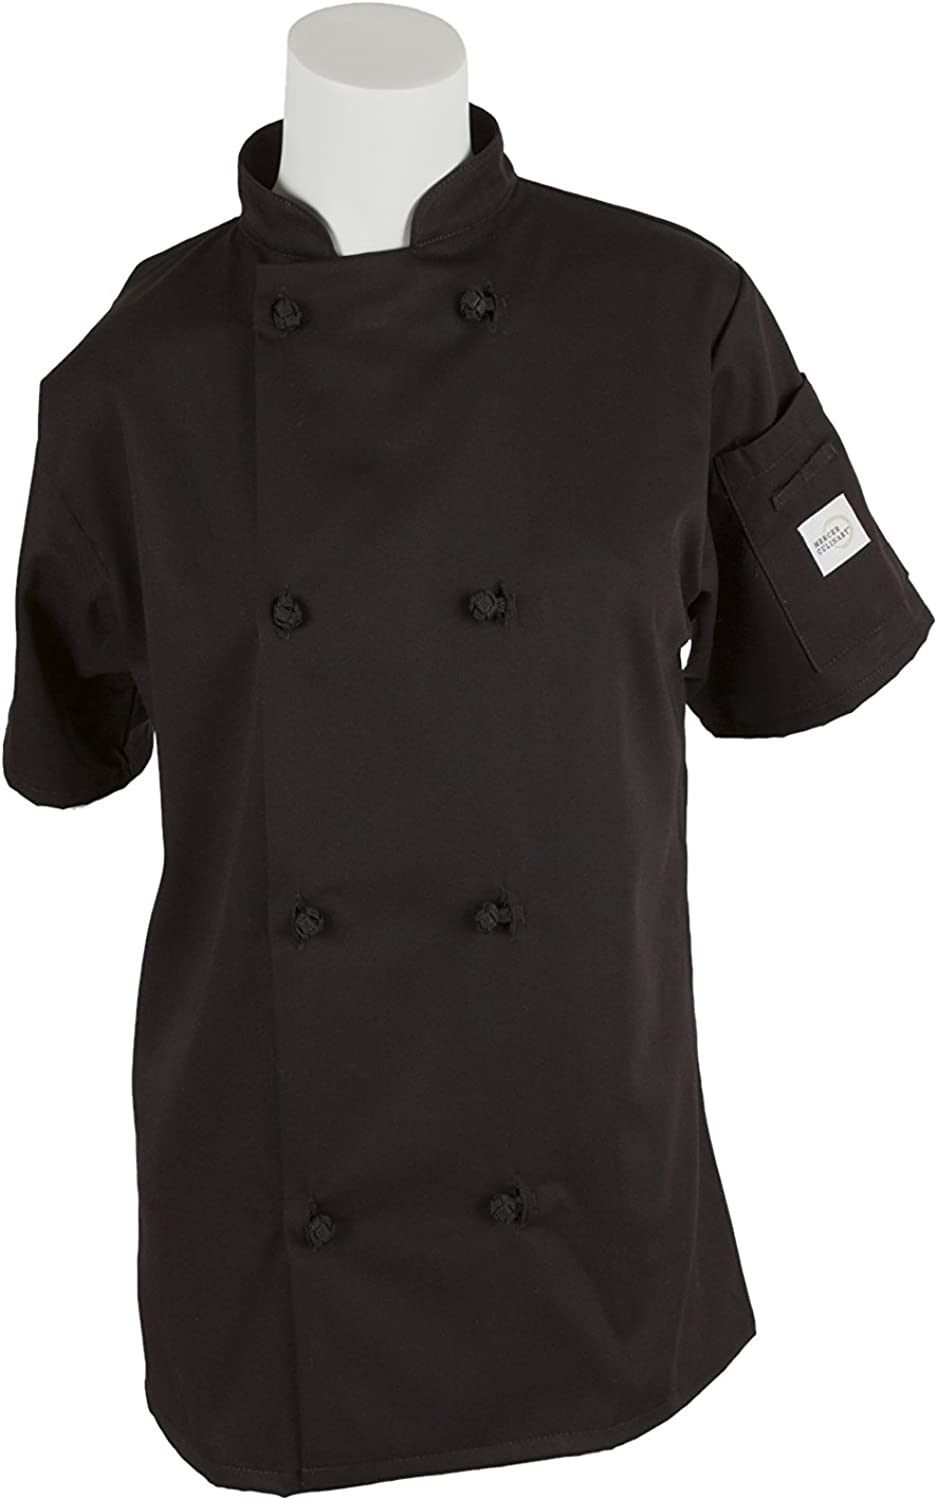 Mercer Culinary M60024BK3X Millennia Women's Short Sleeve Cook Jacket with Cloth Knot Buttons, 3XLarge, Black